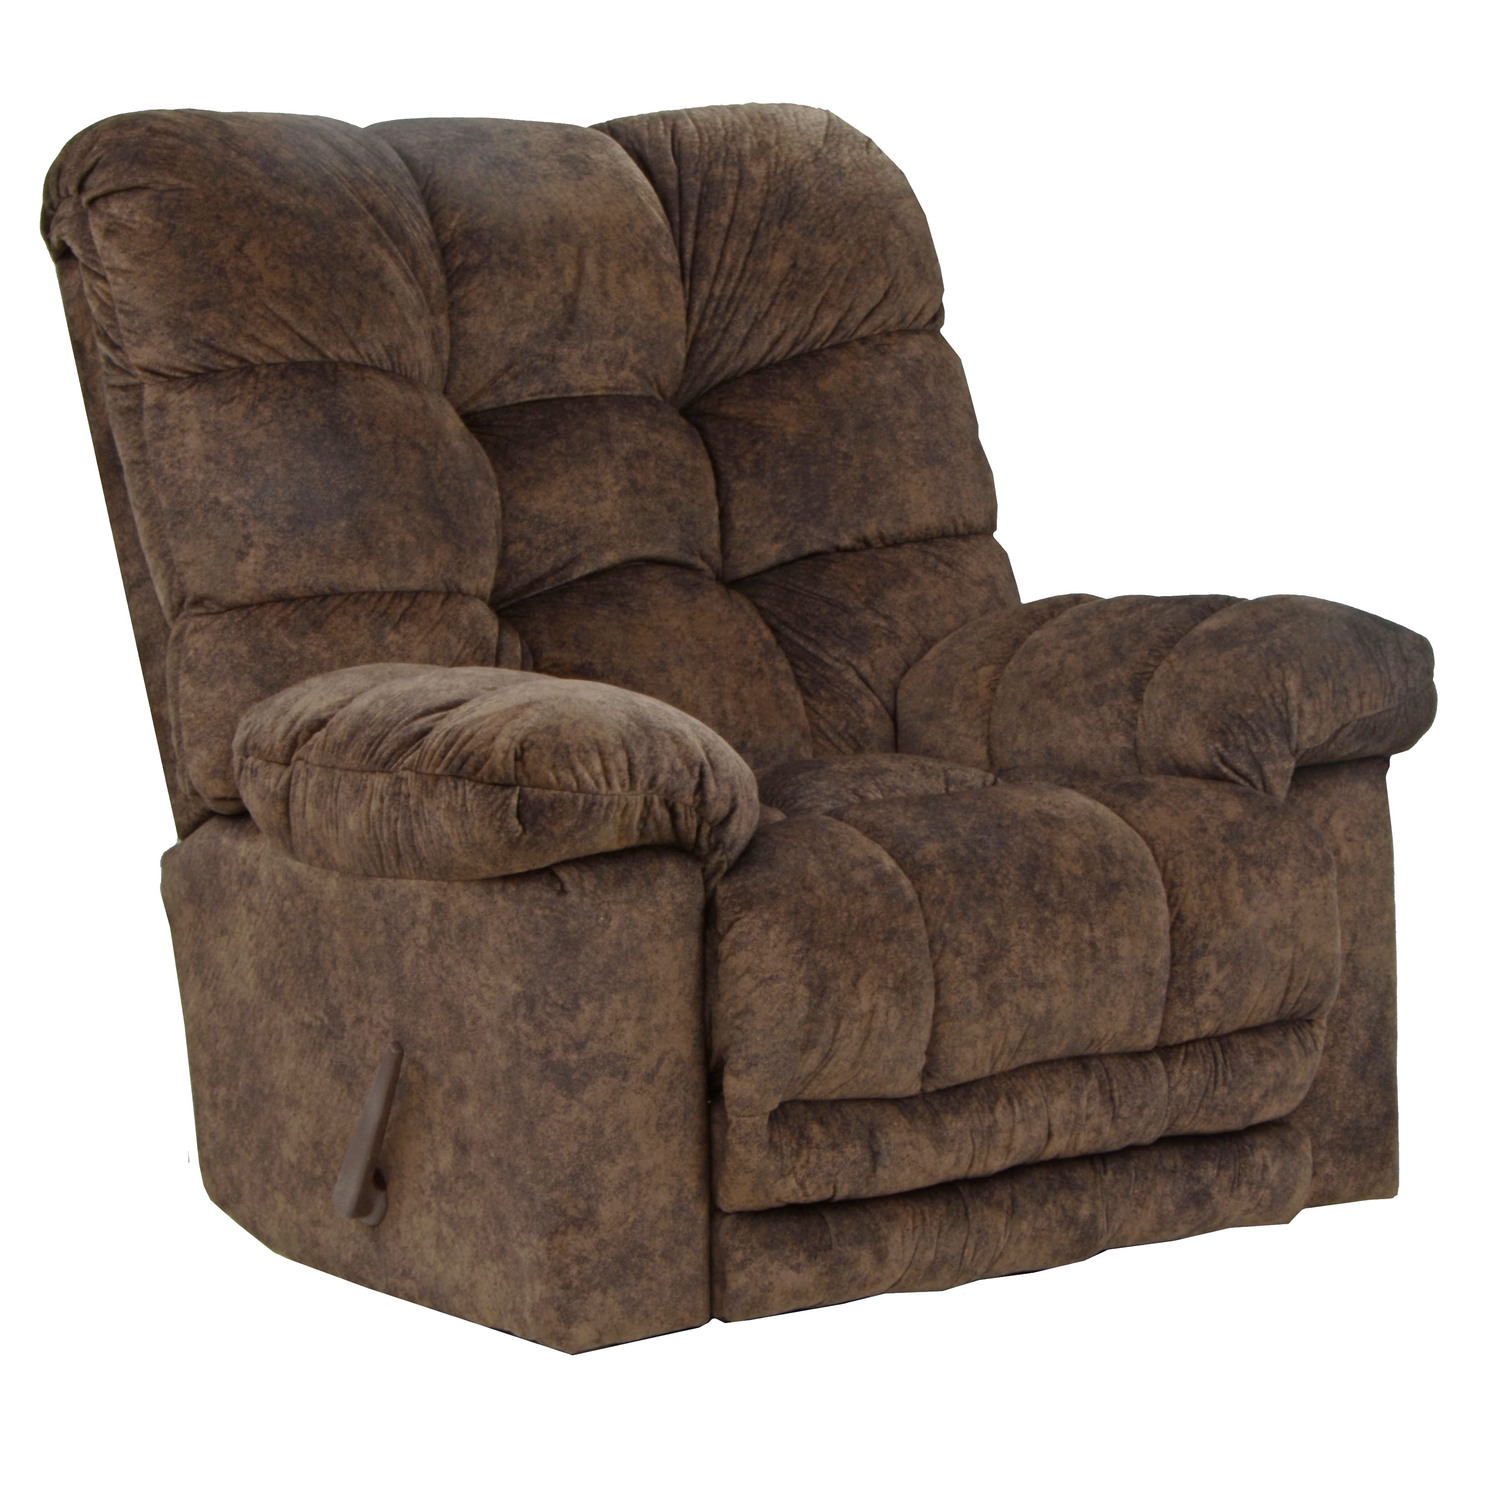 Catnapper bronson recliner by oj commerce for Catnapper reclining chaise